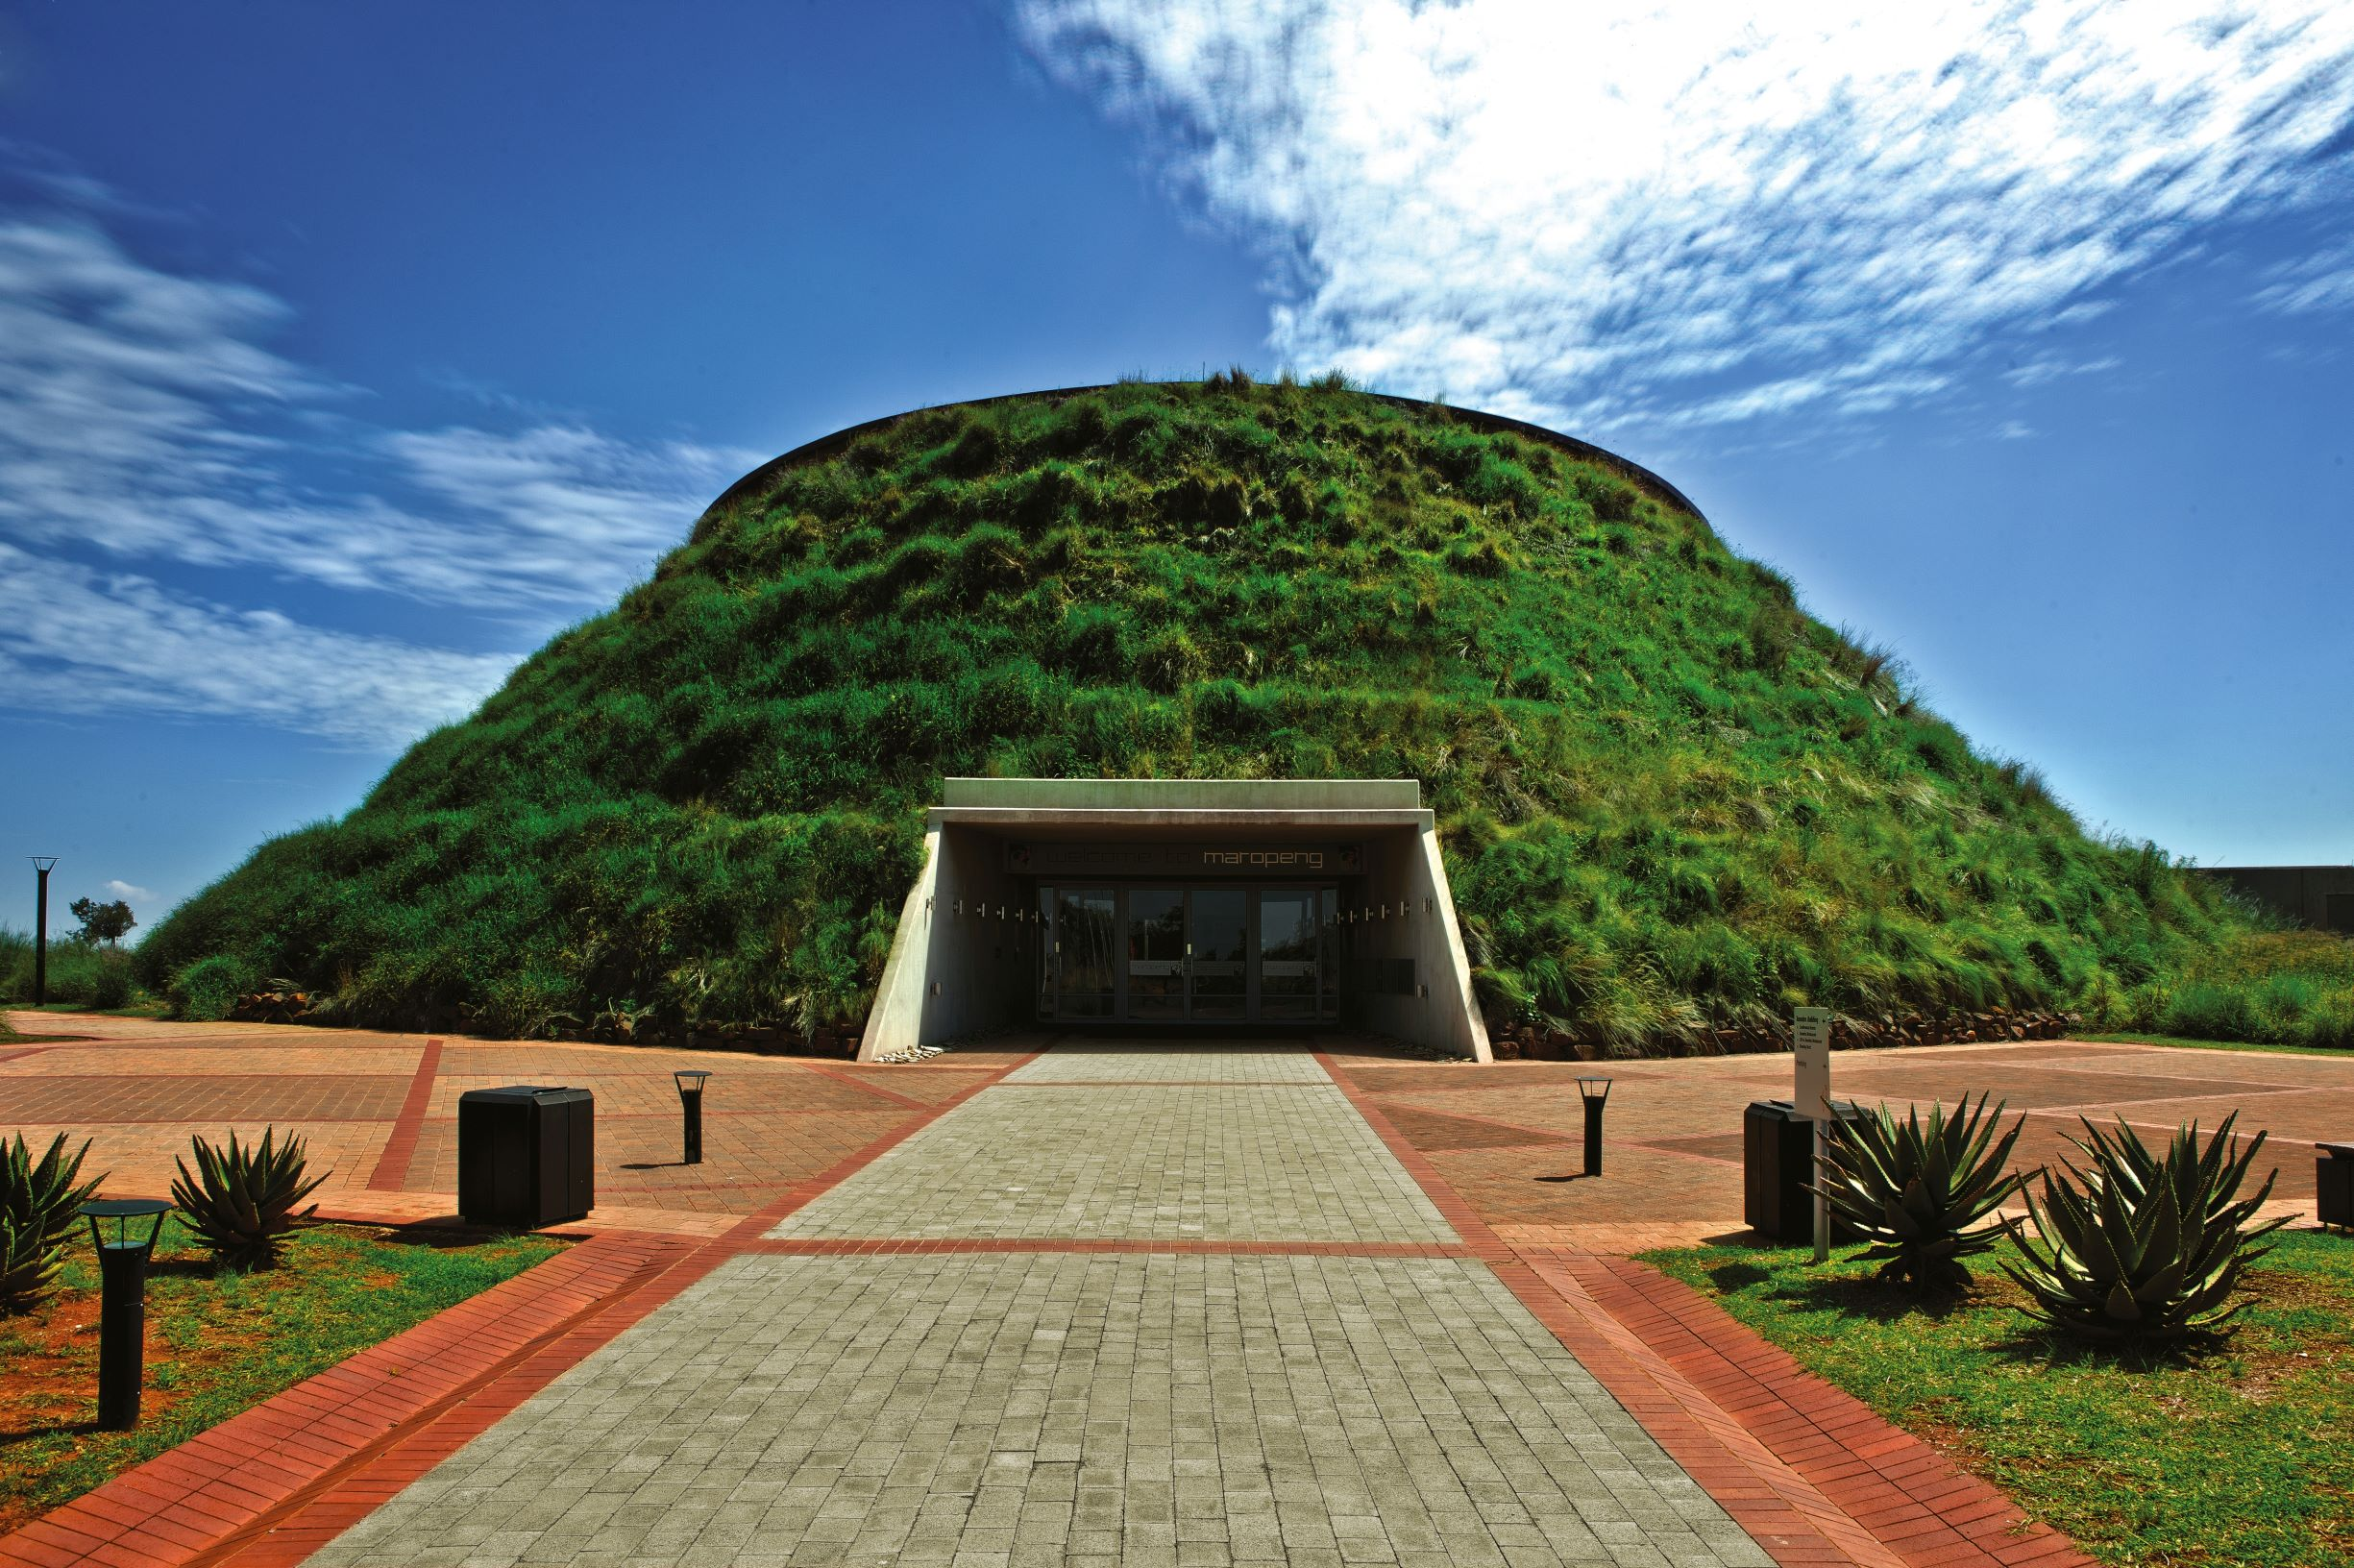 Day 2 | The Cradle of Humankind